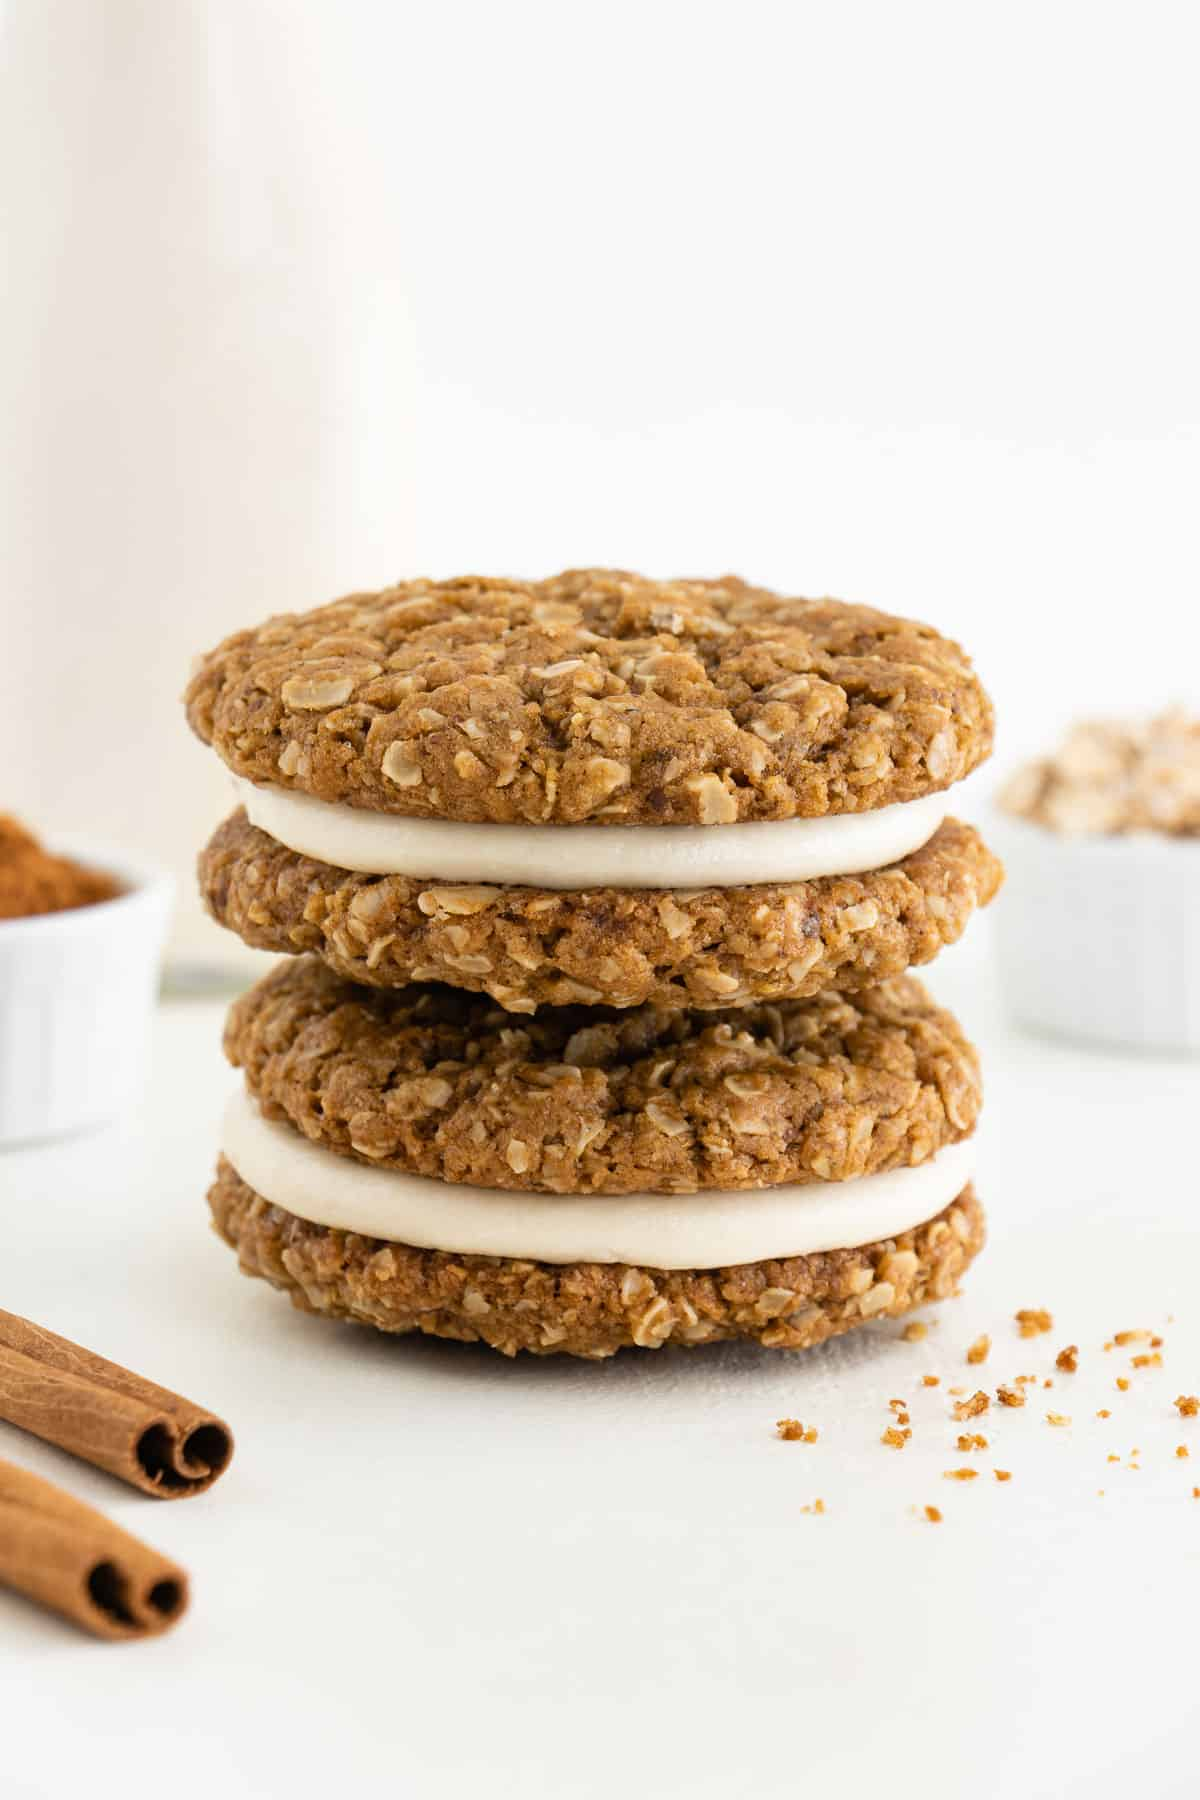 a stack of two vegan oatmeal cream pie cookies beside a jar of almond milk, a bowl of oats, and cinnamon